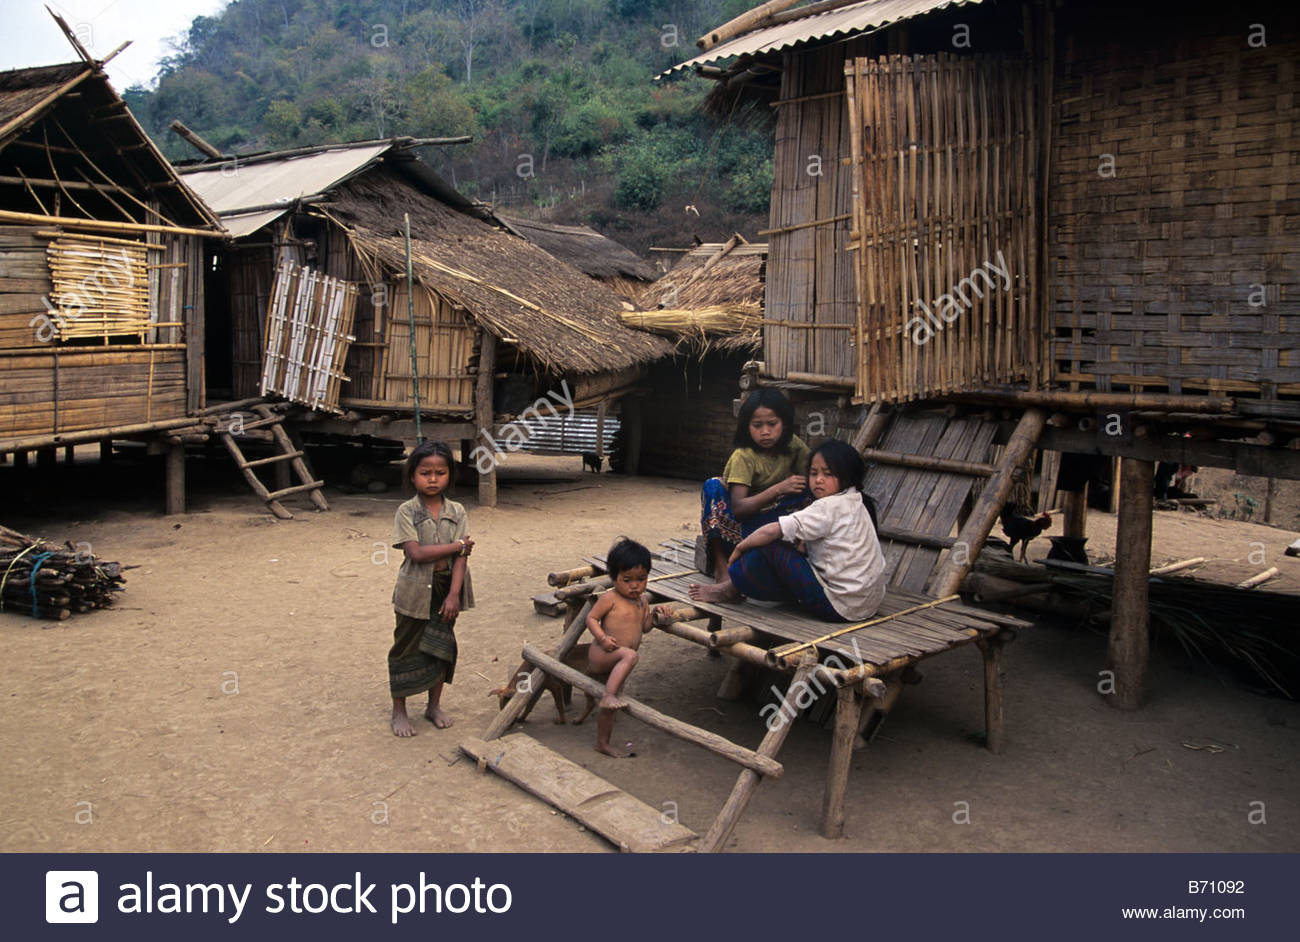 hmong-children-or-family-outside-their-traditional-bamboo-grass-houses-B71092.jpg